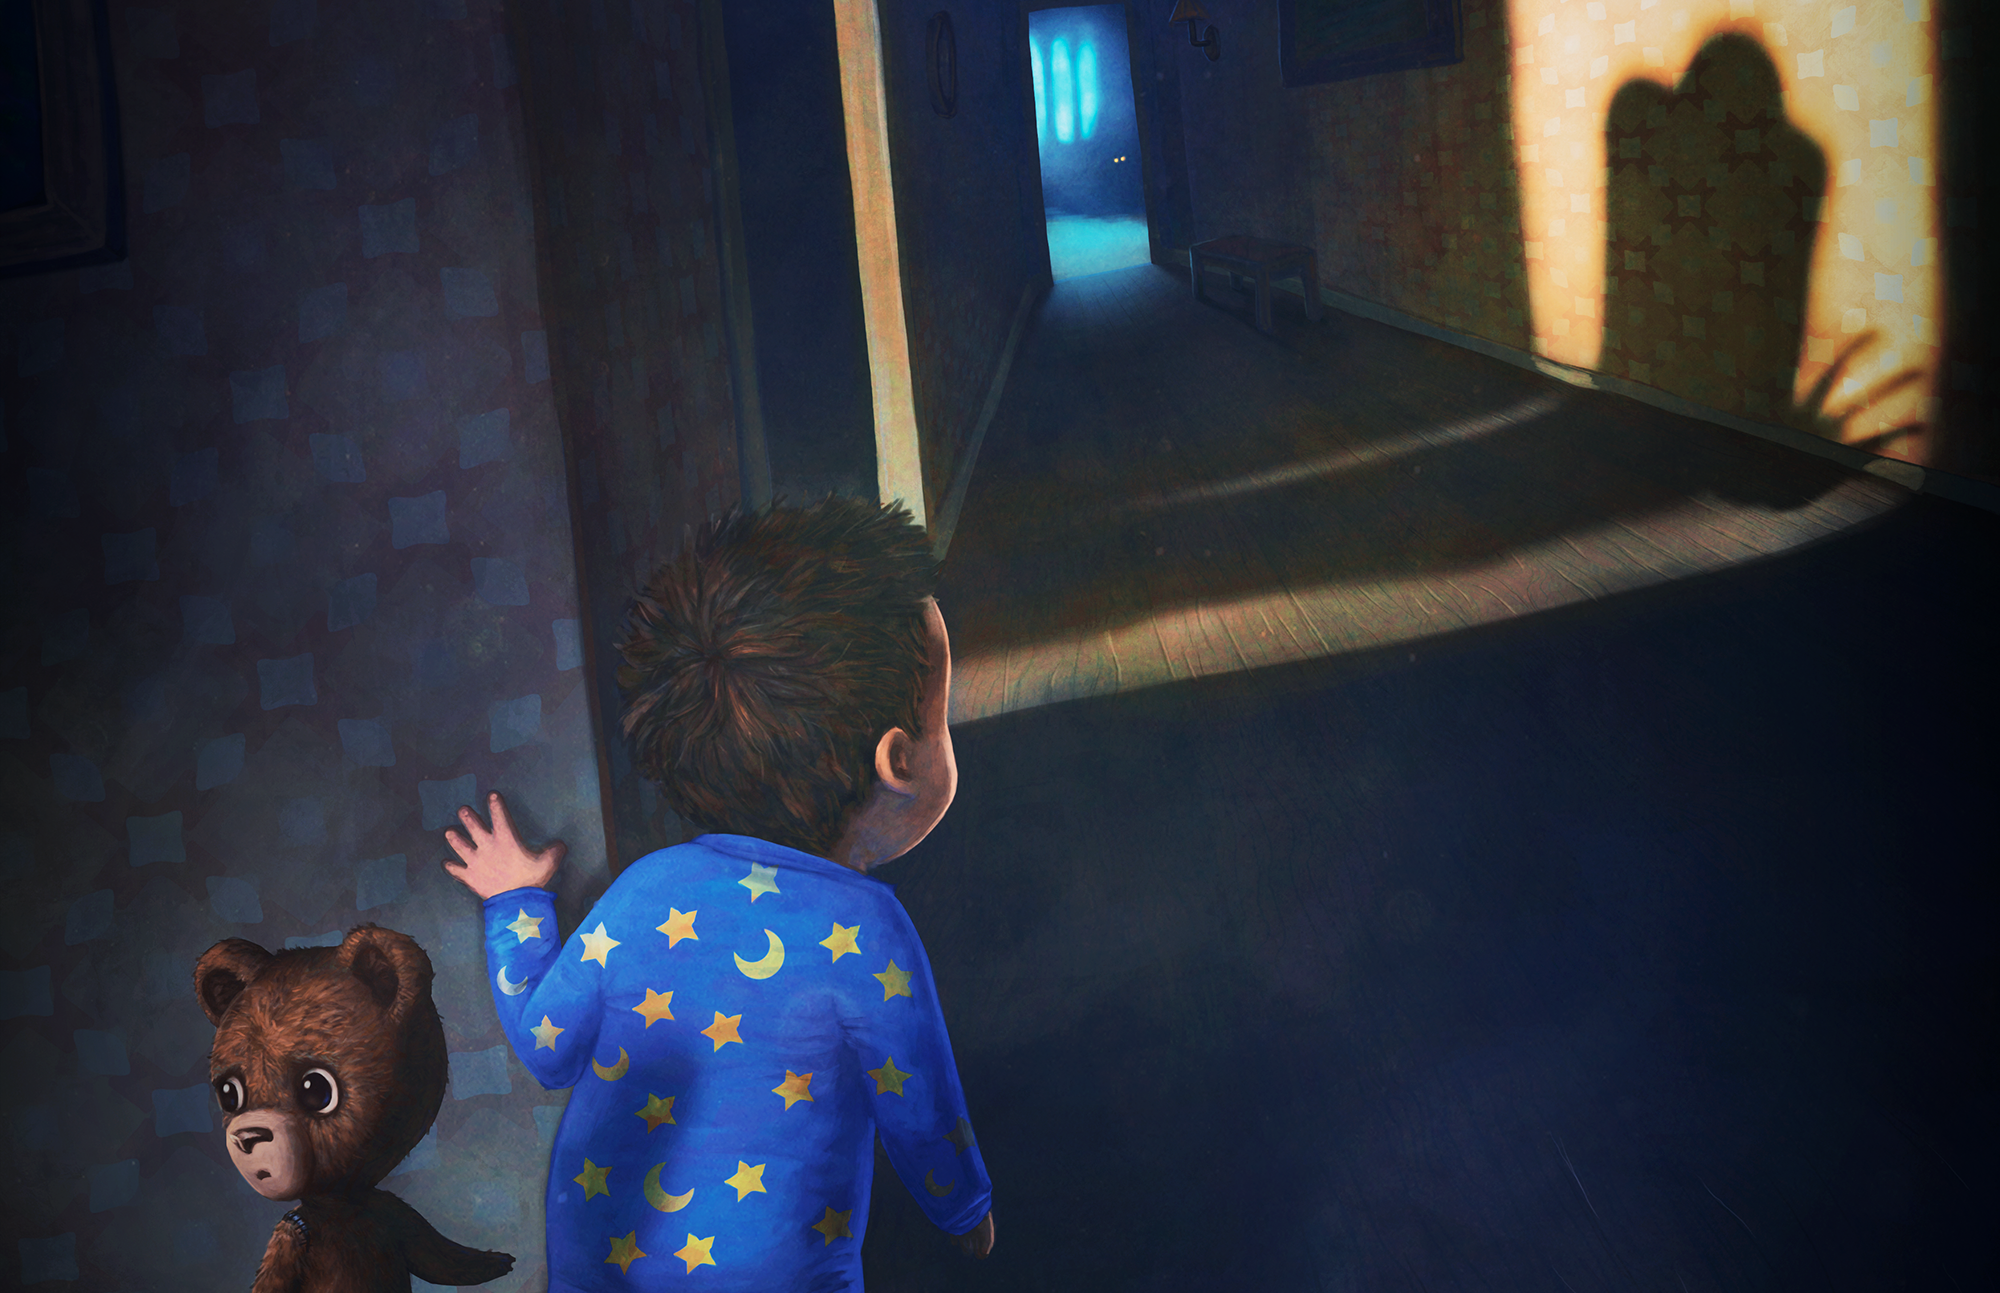 Among the Sleep, PS4 review: An experiment rather than fully fledged video  game | The Independent